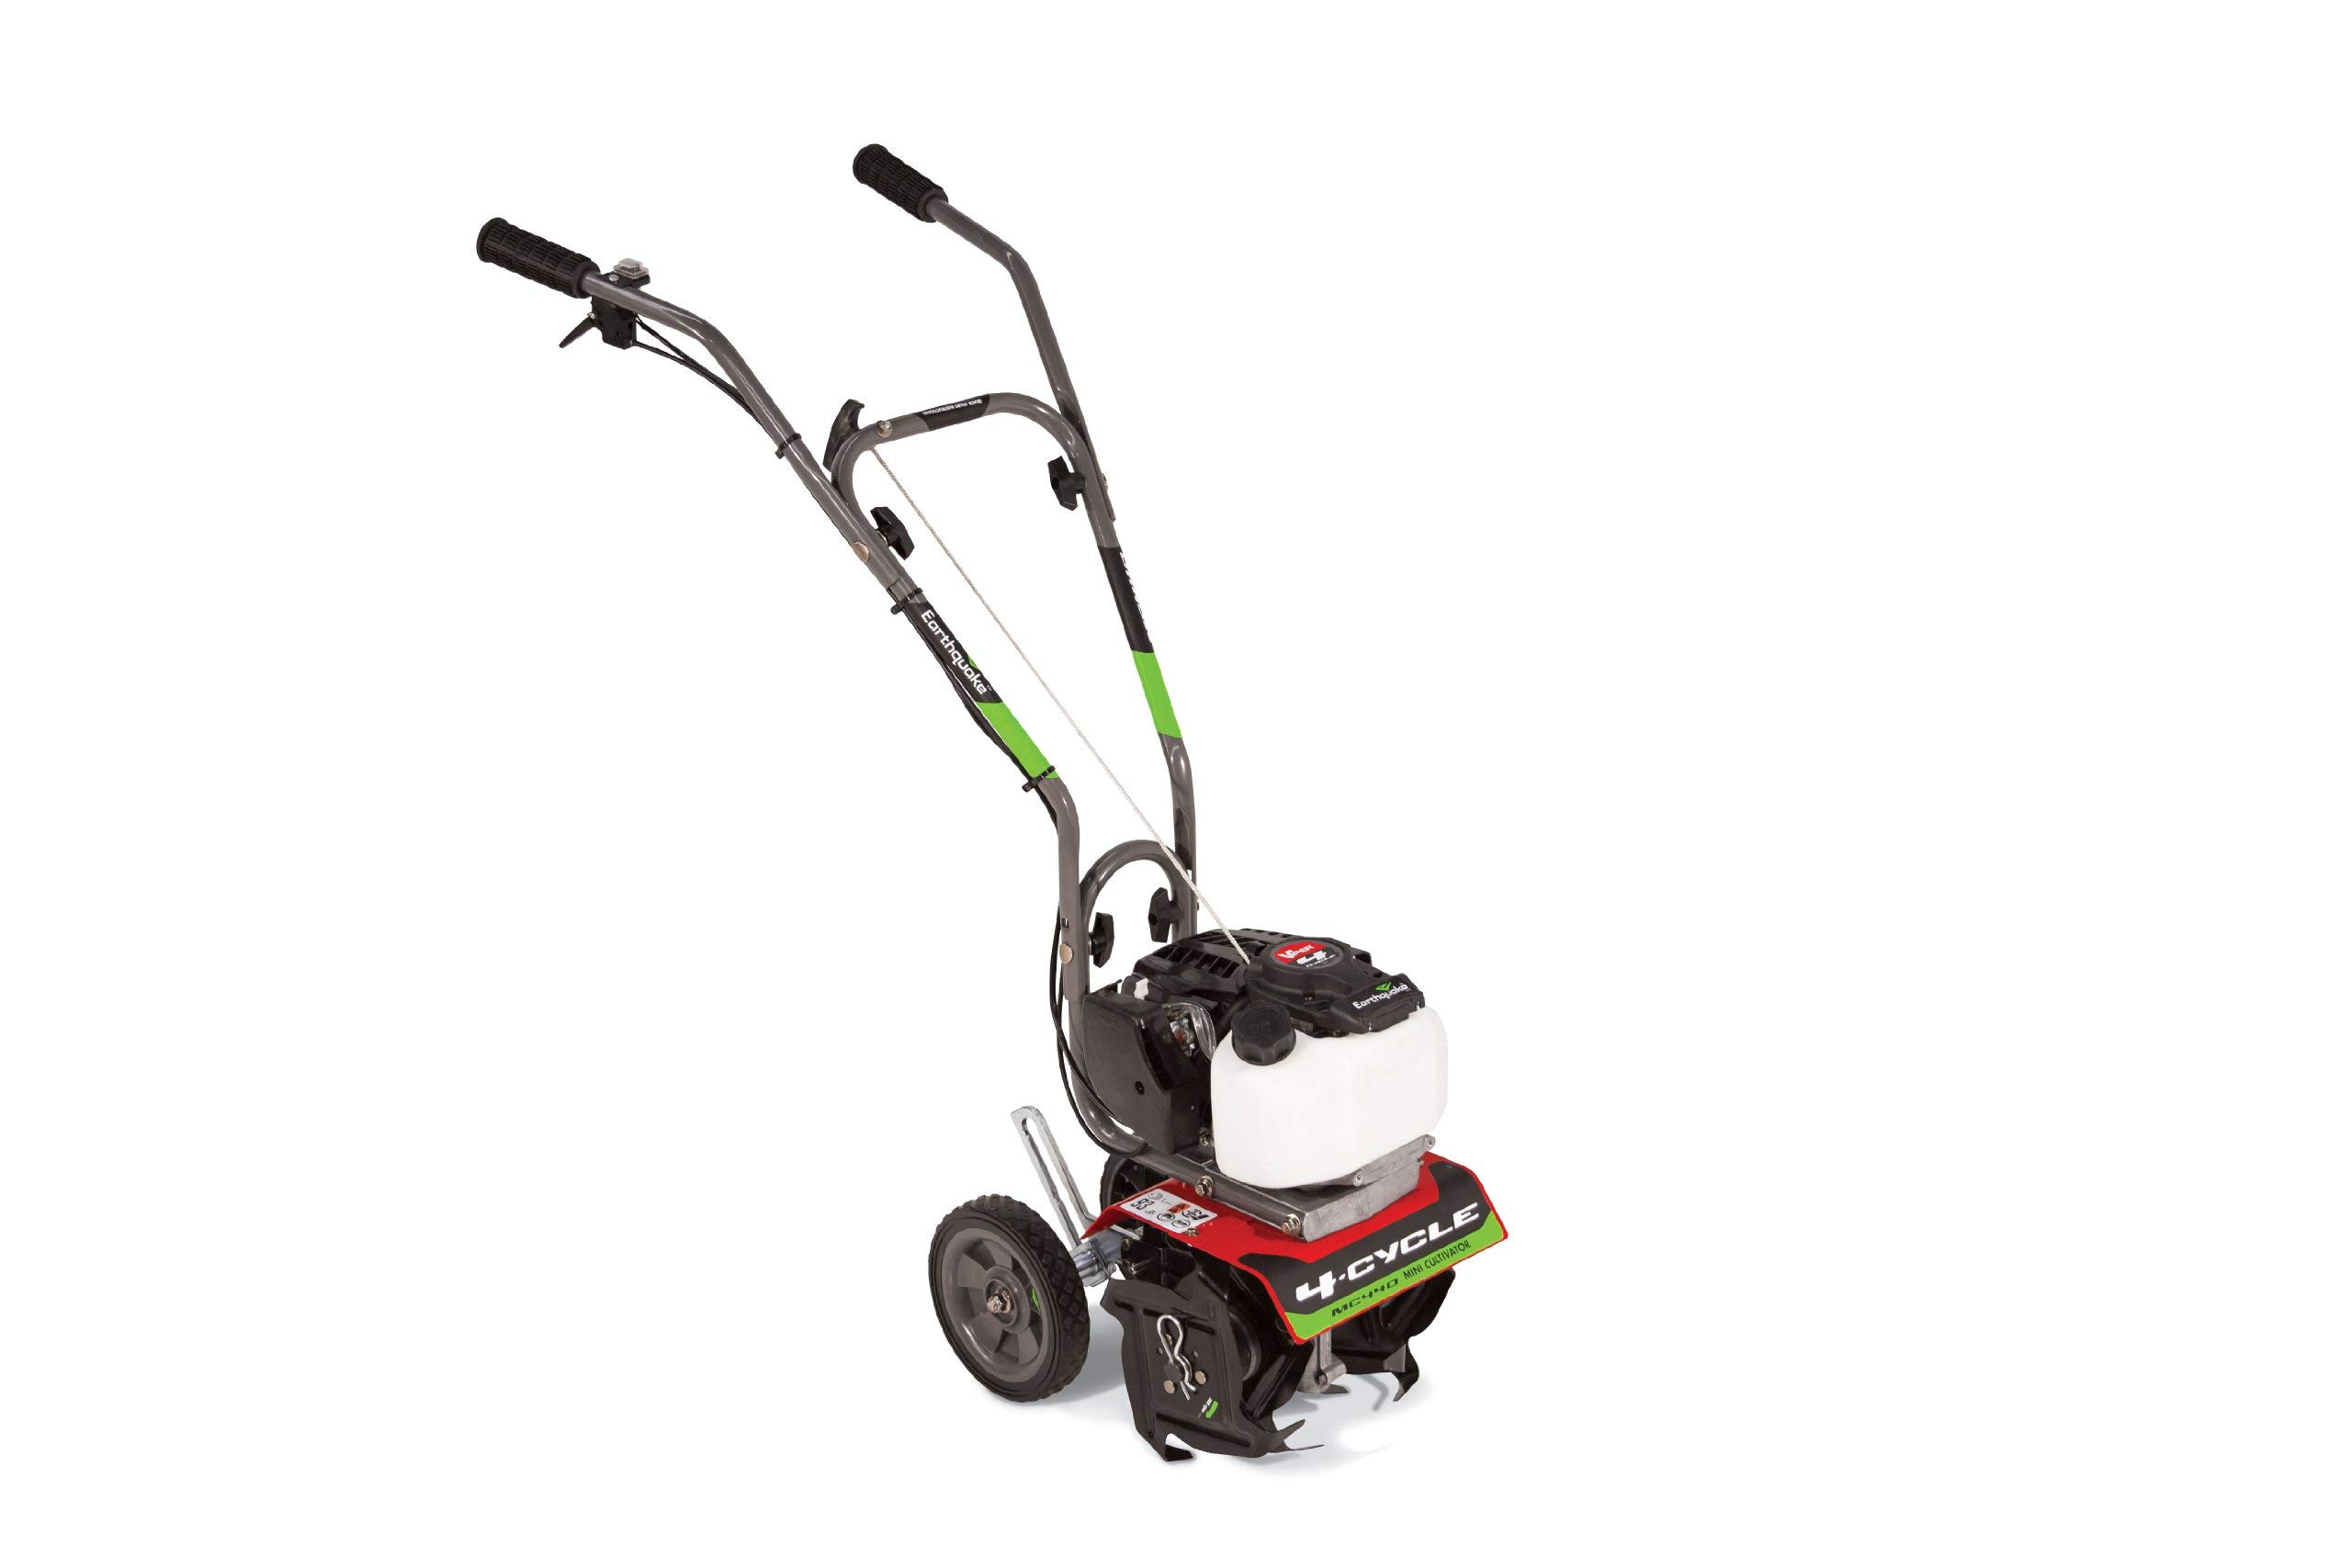 Earthquake 12802 MC440 Mini Cultivator Tiller with 40cc 4-Cycle Viper Engine, 5 Year Warranty (Renewed)